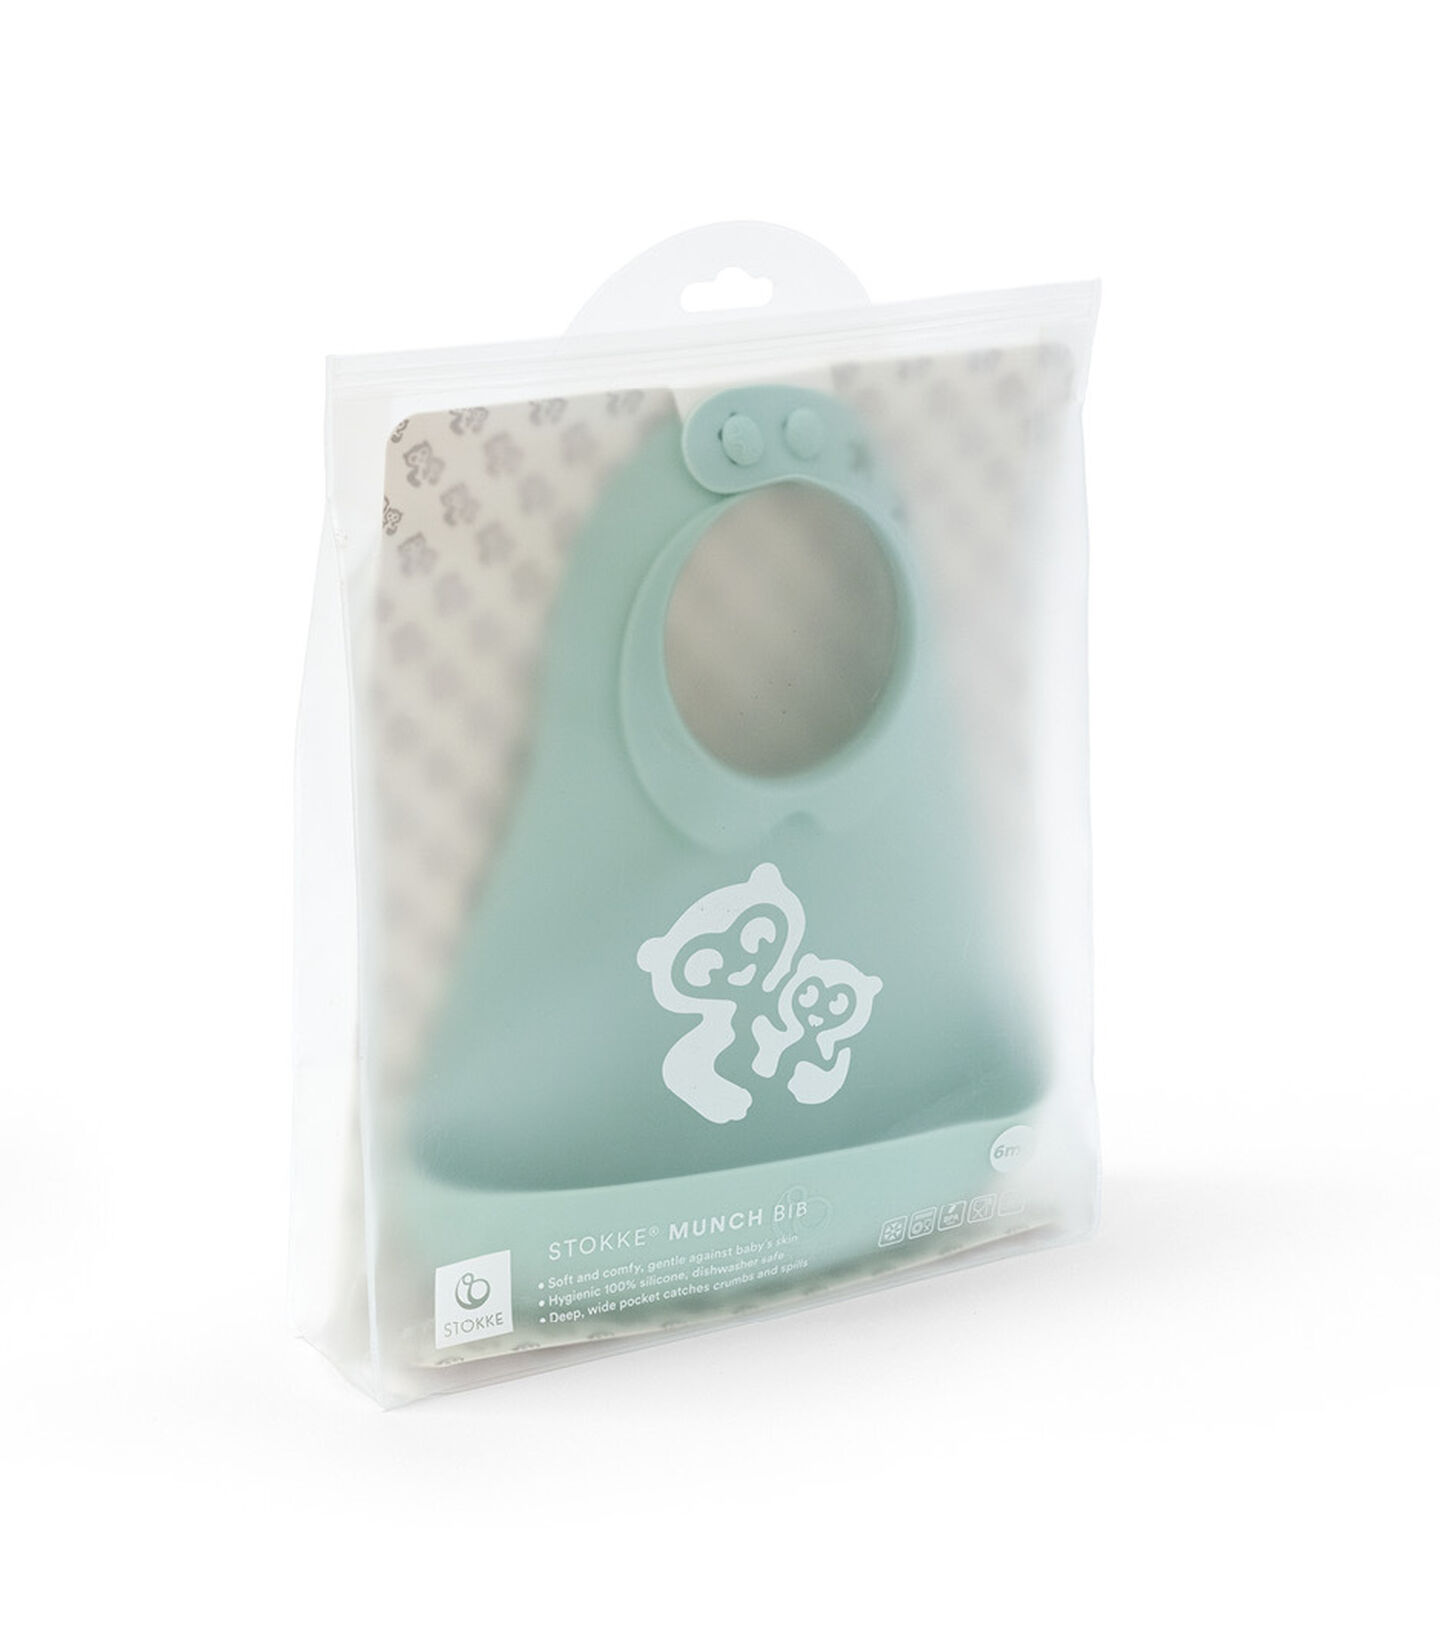 Stokke™ Munch™ Bib in End User Packaging box